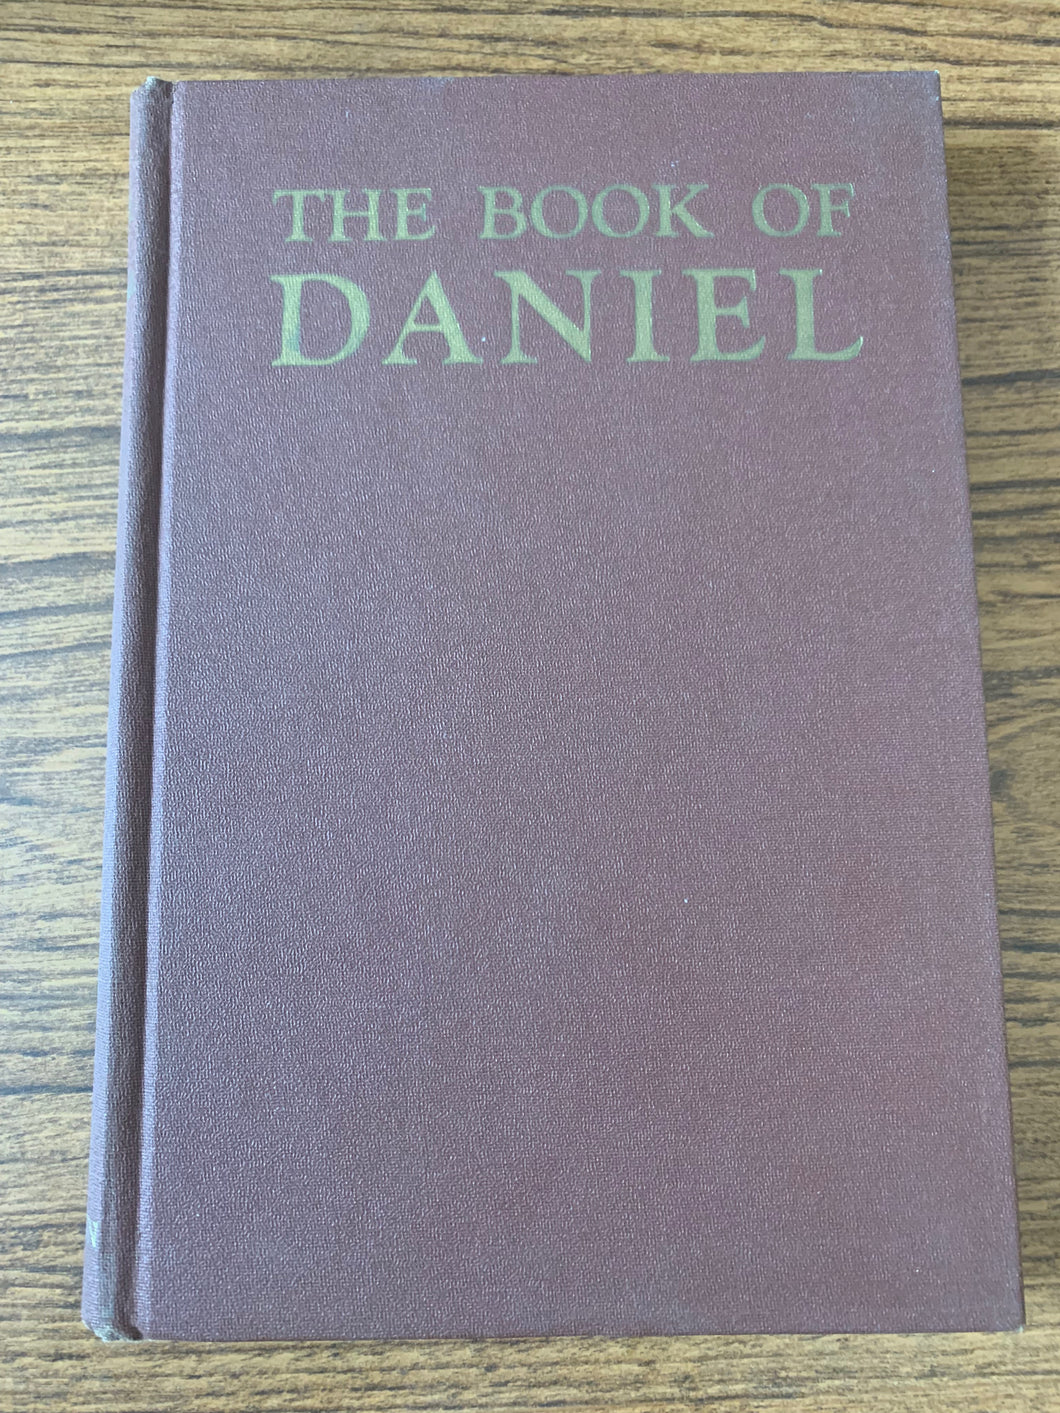 The Book of Daniel by Rev. Clarence Larkin